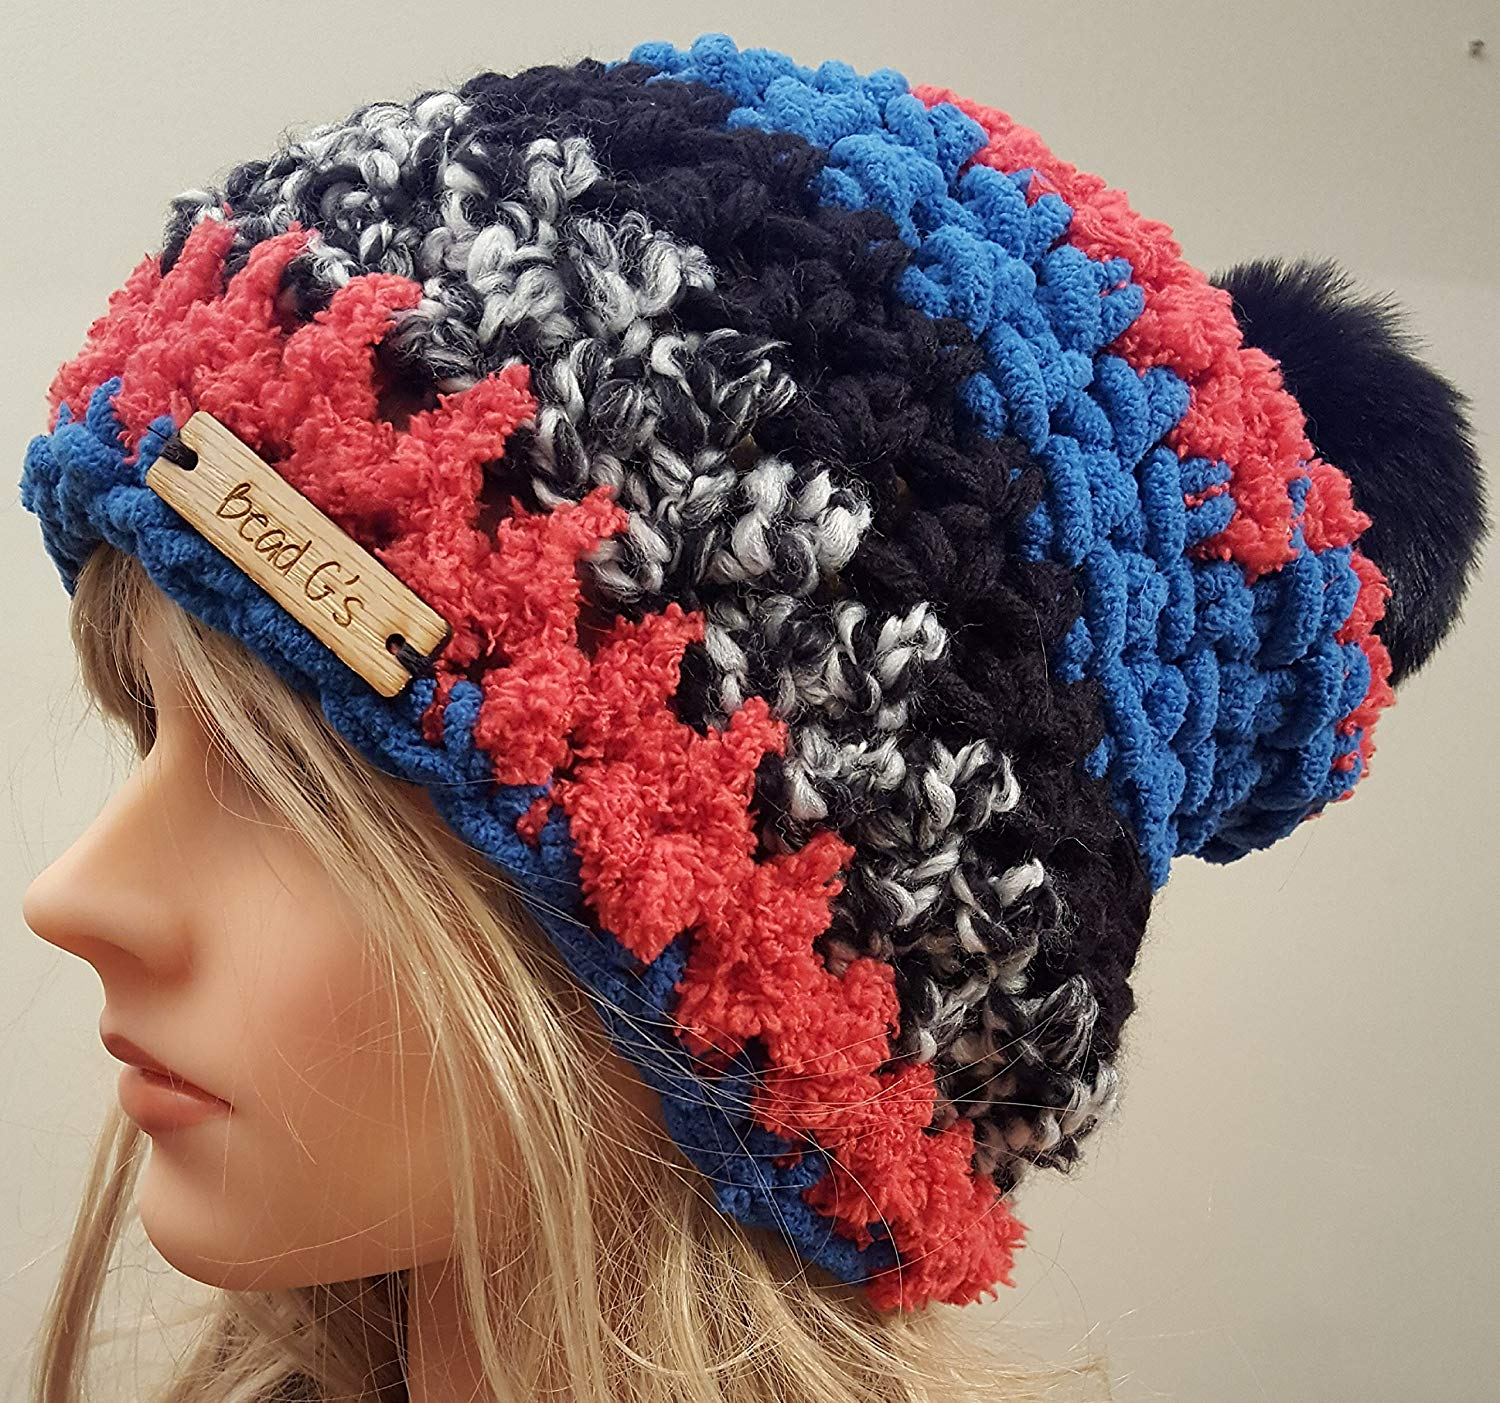 01503b85a3d Get Quotations · Crochet Blue and Red Fuzzy Pom Pom Hat. Made By Bead G s  On AMAZON